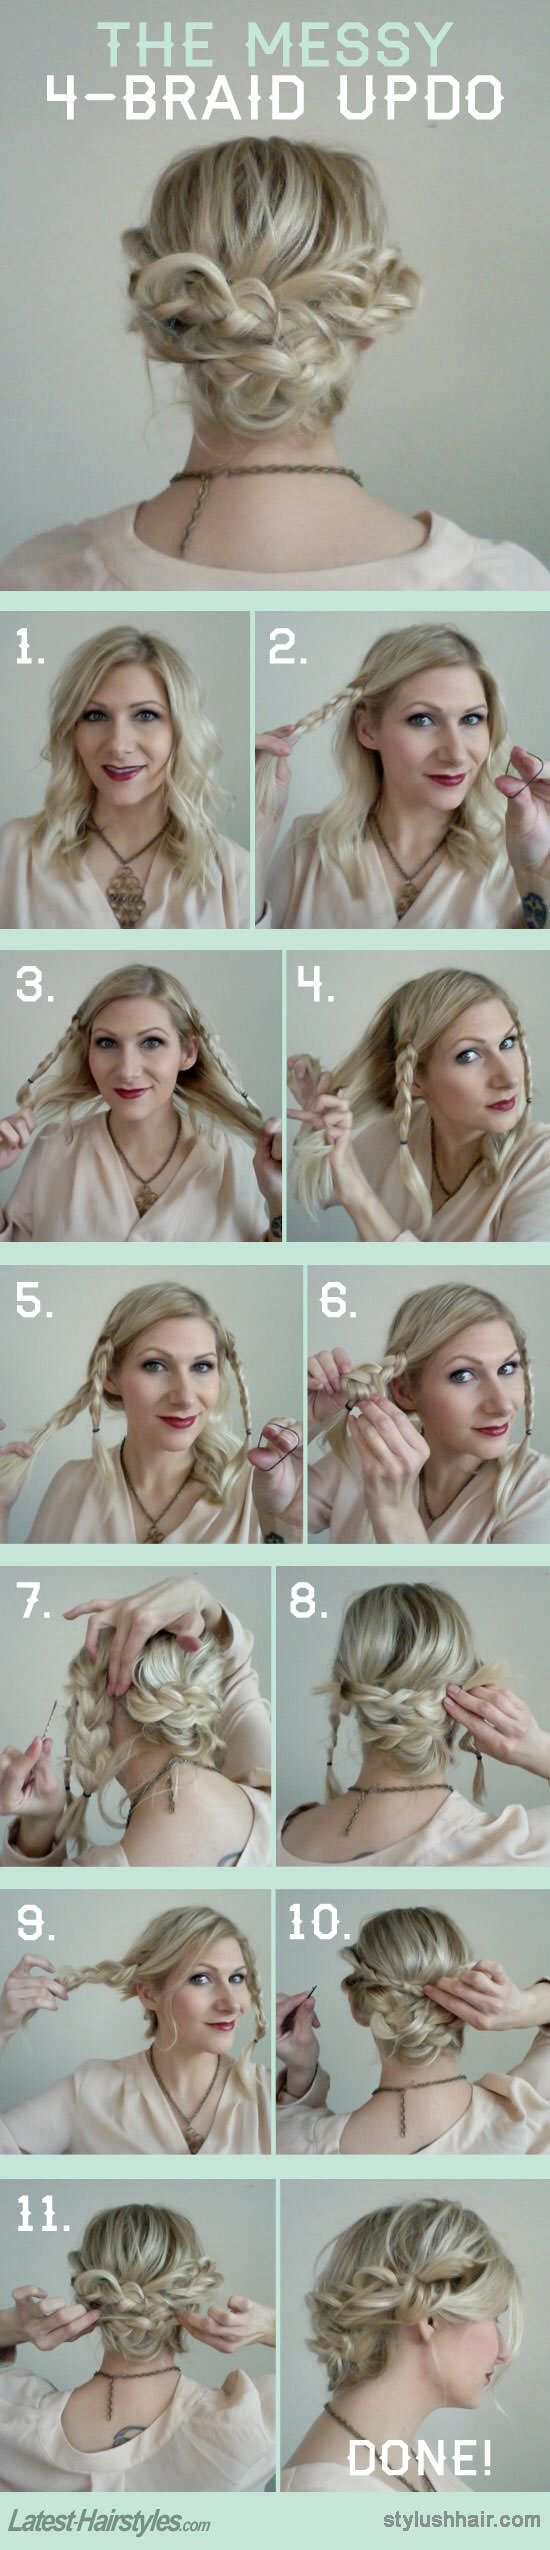 15 Cute And Easy Hairstyle Tutorials For Mediumlength Hair